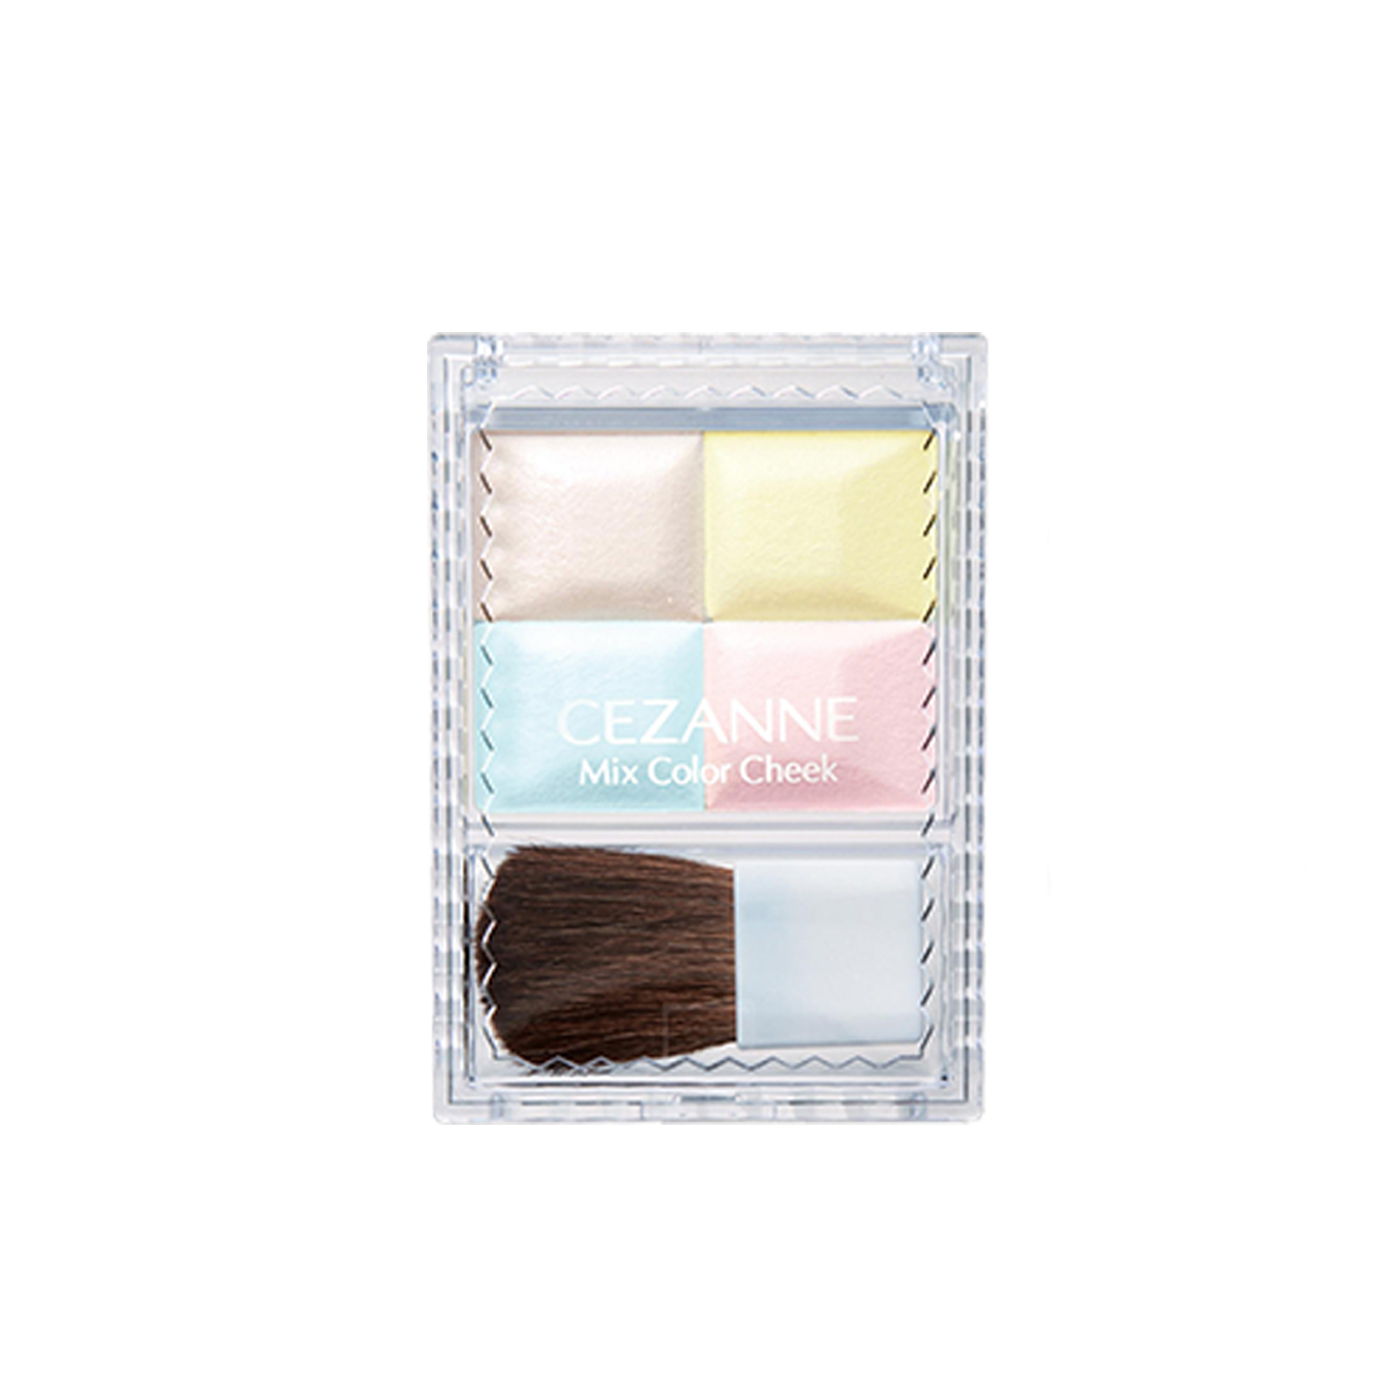 Cezanne Mix Color Cheek Highlight